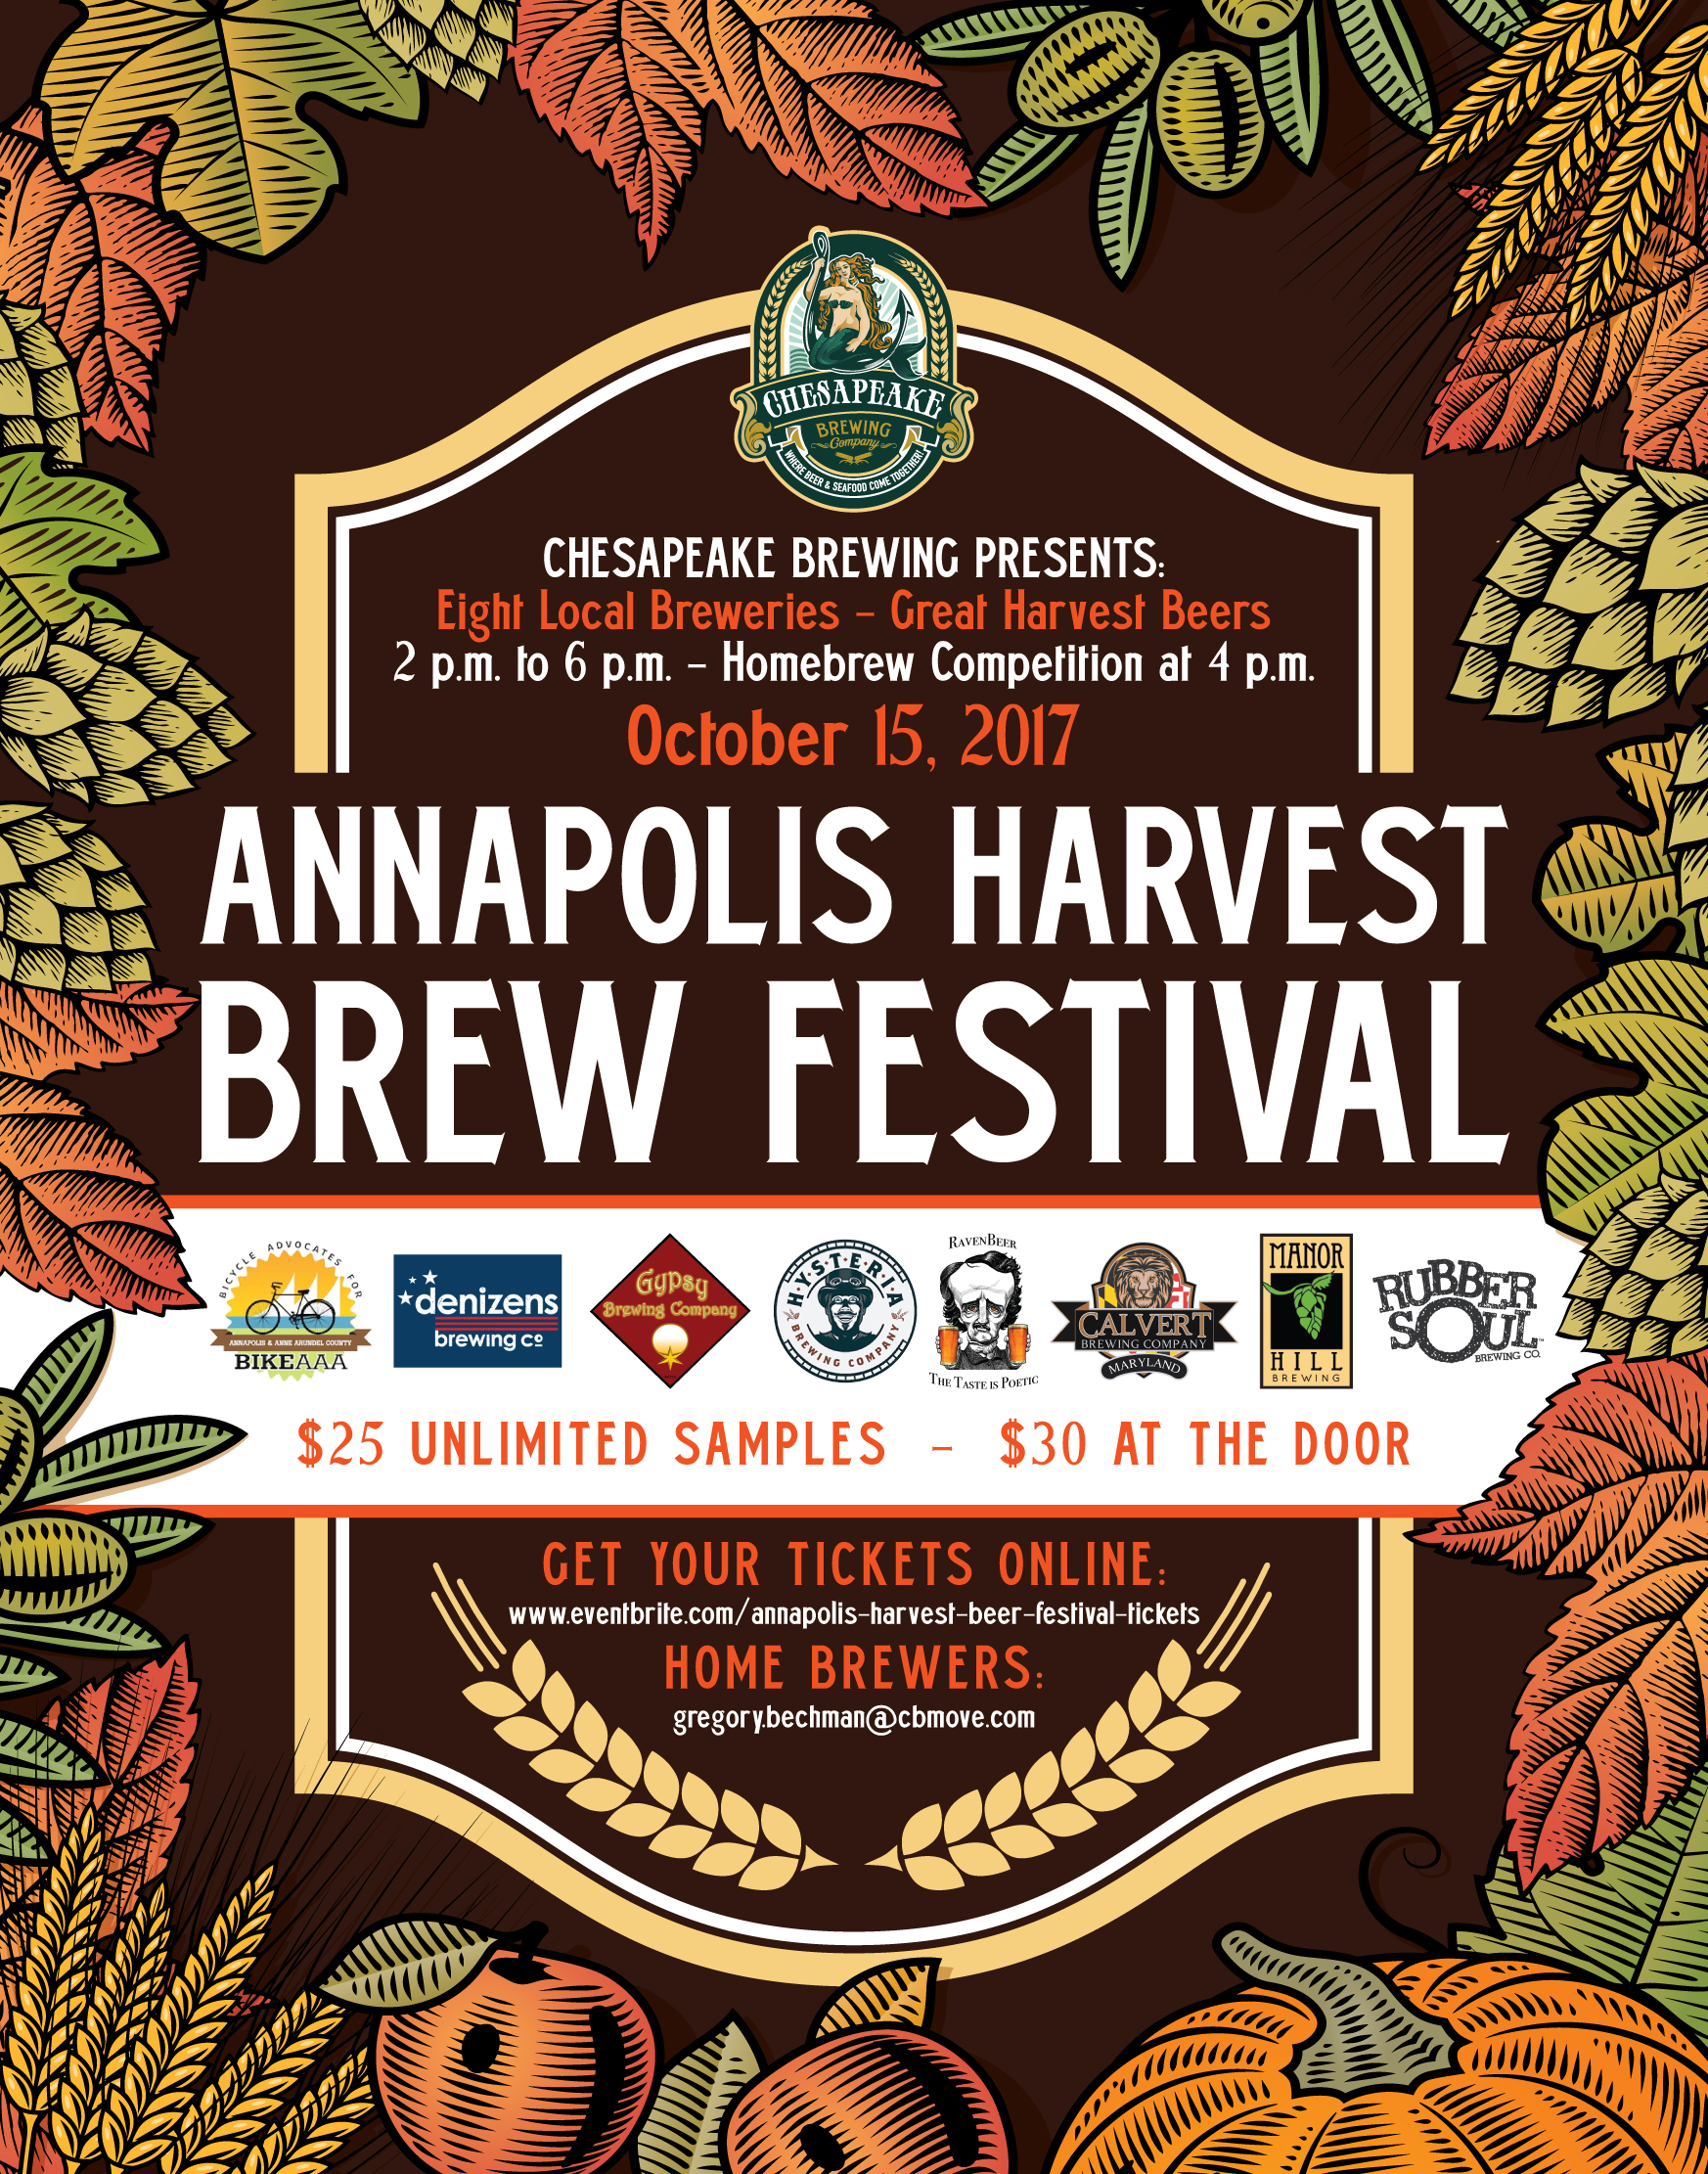 Chesapeake Brewing Fall Harvest Beer Festival